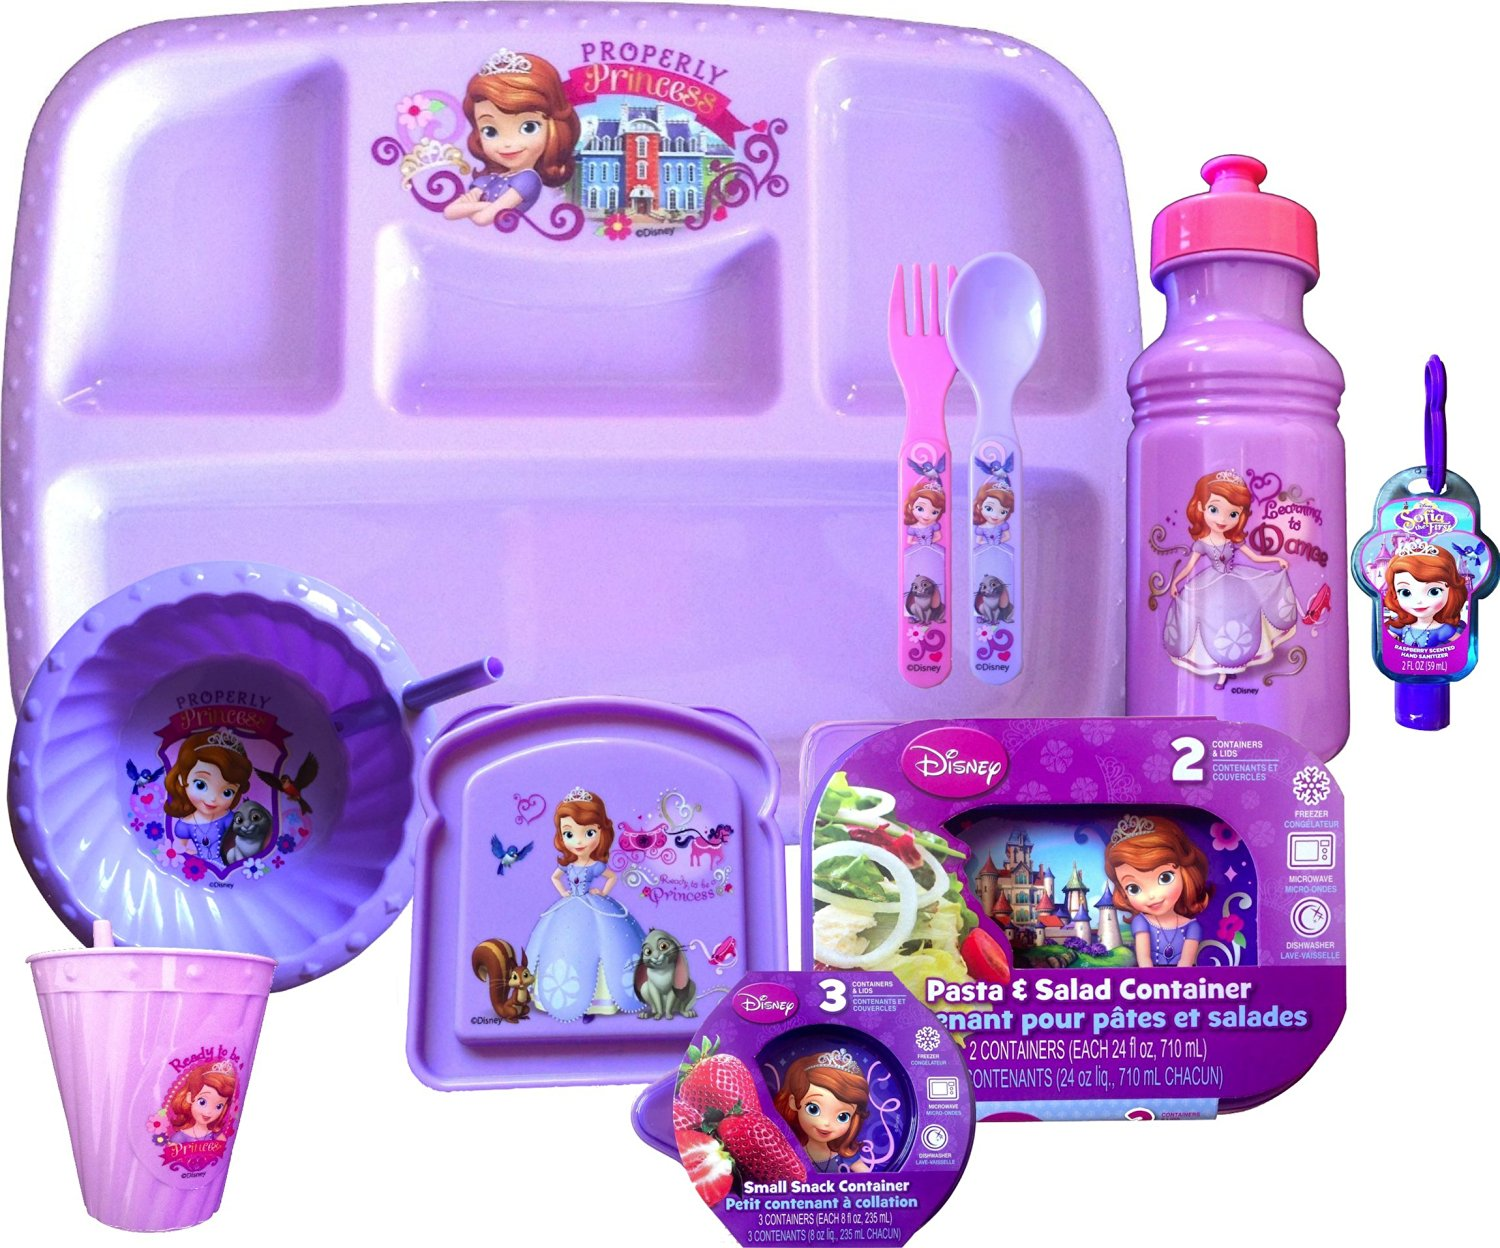 Disneyland Disney Sofia the First Survival Kit Survive Disneyland Lunch Easy to Clean an Easy to Store , Disney Sofia the First Dinnerware Set Includes 4 Sectioned Dinner Tray,1 Lunch Bowl, 2 Pasta& Salad Container with Lids, 3 Small Snack Container with Lids , Sandwich Container , Fork, Spoon, 1